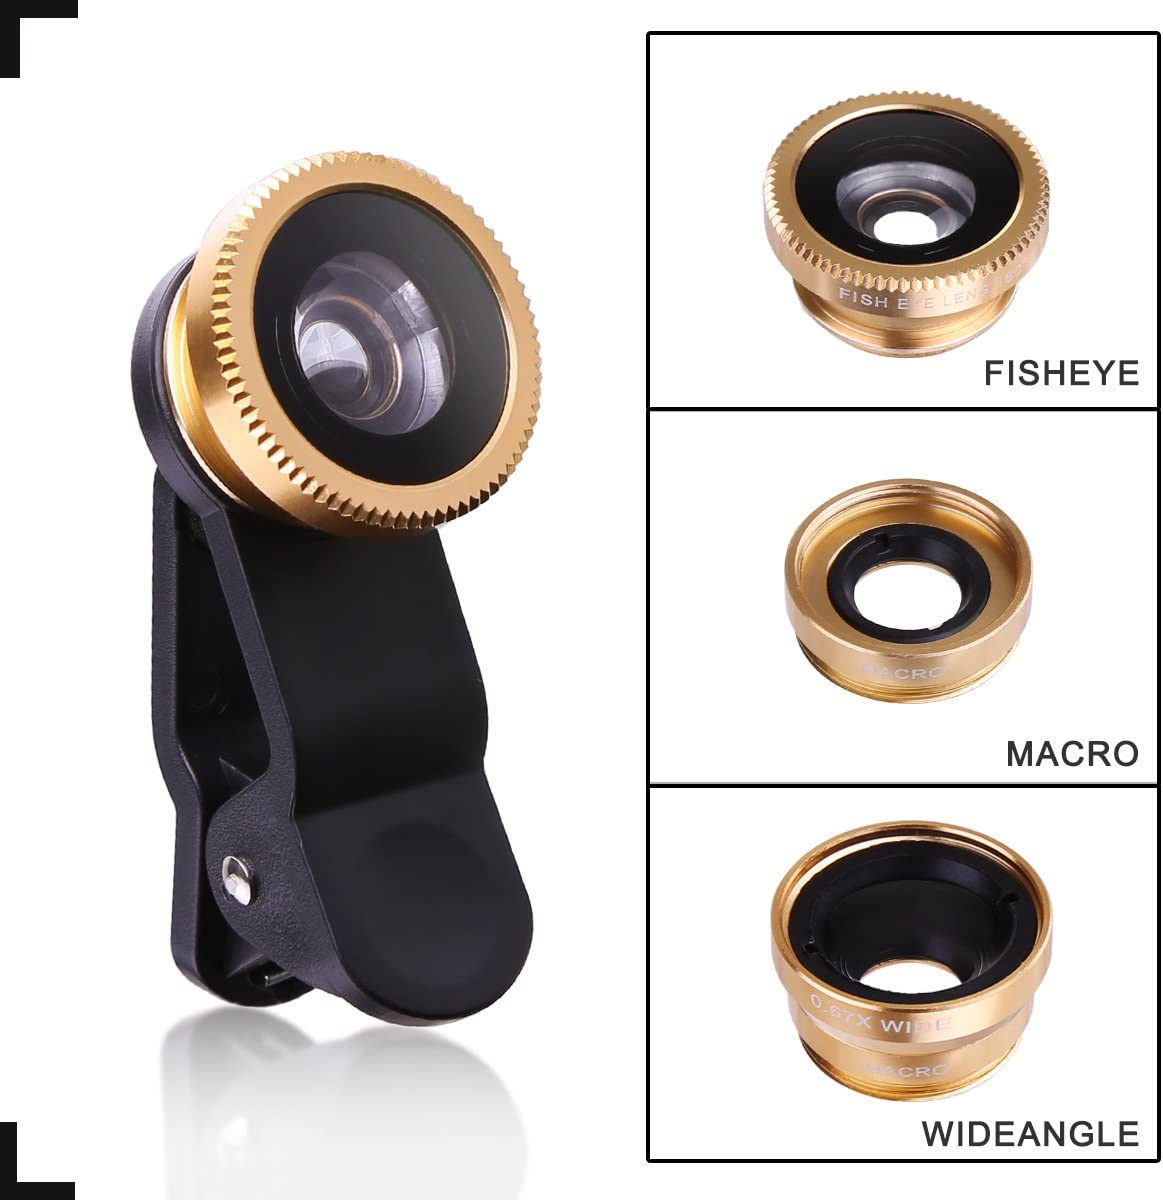 0.67X Wide Angle+ 10X Macro Lens+ Universal Clip for iPhone7 7s 6 6s plus 5 5s 5c 4s ipad Samsung HTC Android 180/°Fish Eye Lens Gold eHizon Universal 3 in 1 Cell Phone Camera Lens Kit